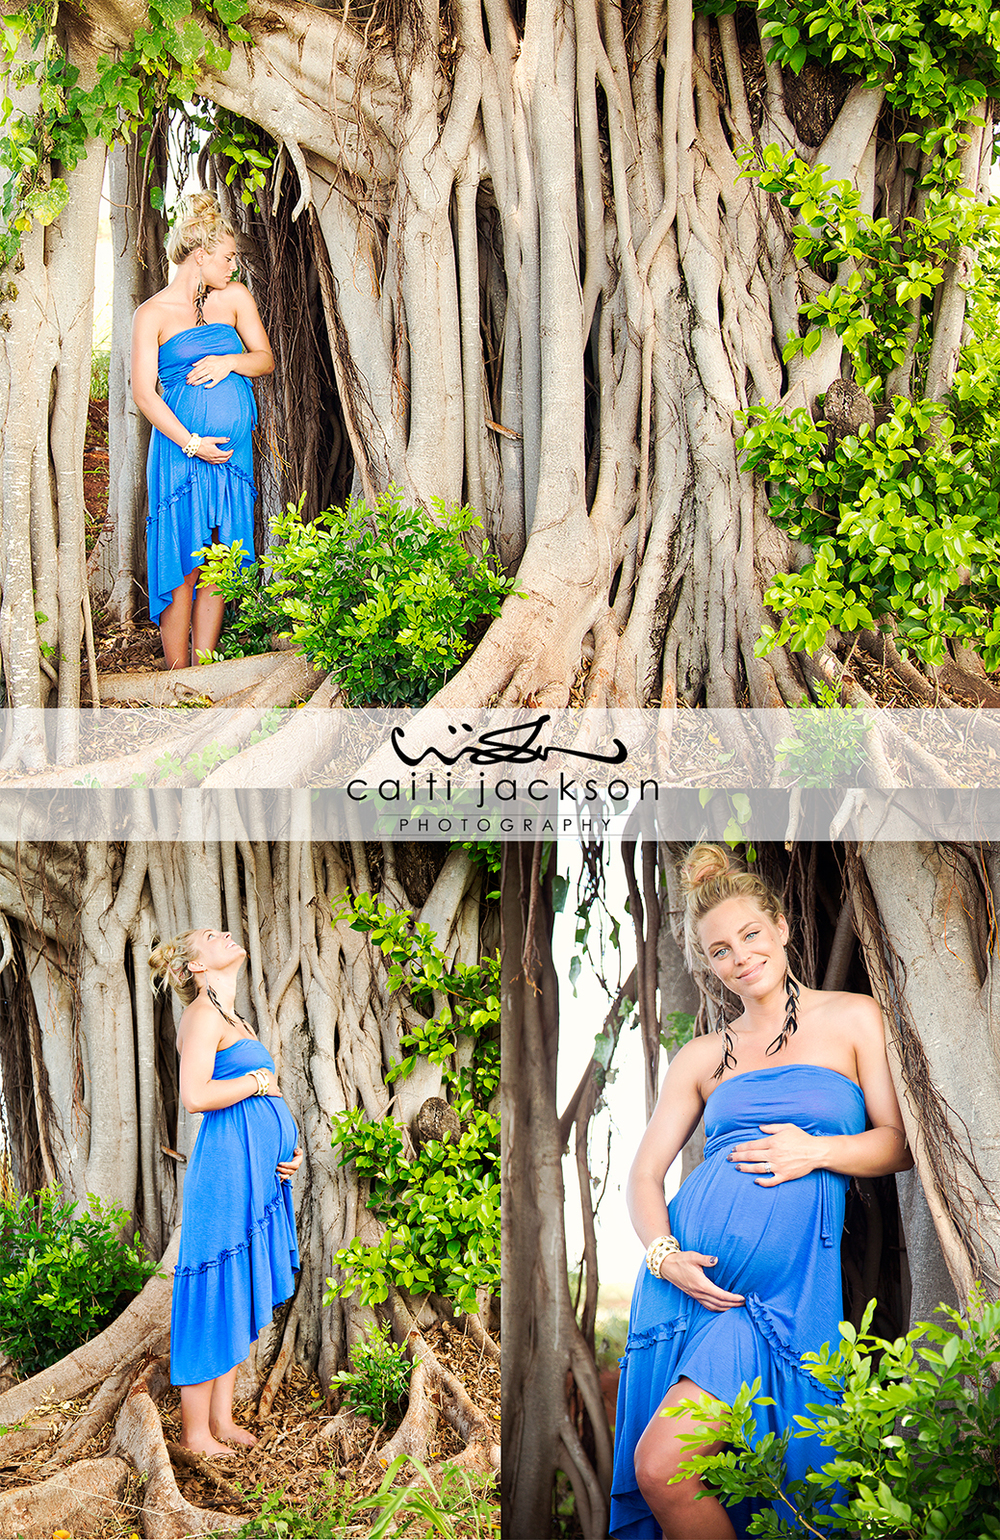 Caiti Jackson Photography - Maternity Photo - Hawaiian maternity photo - Oahu Maternity Photographer